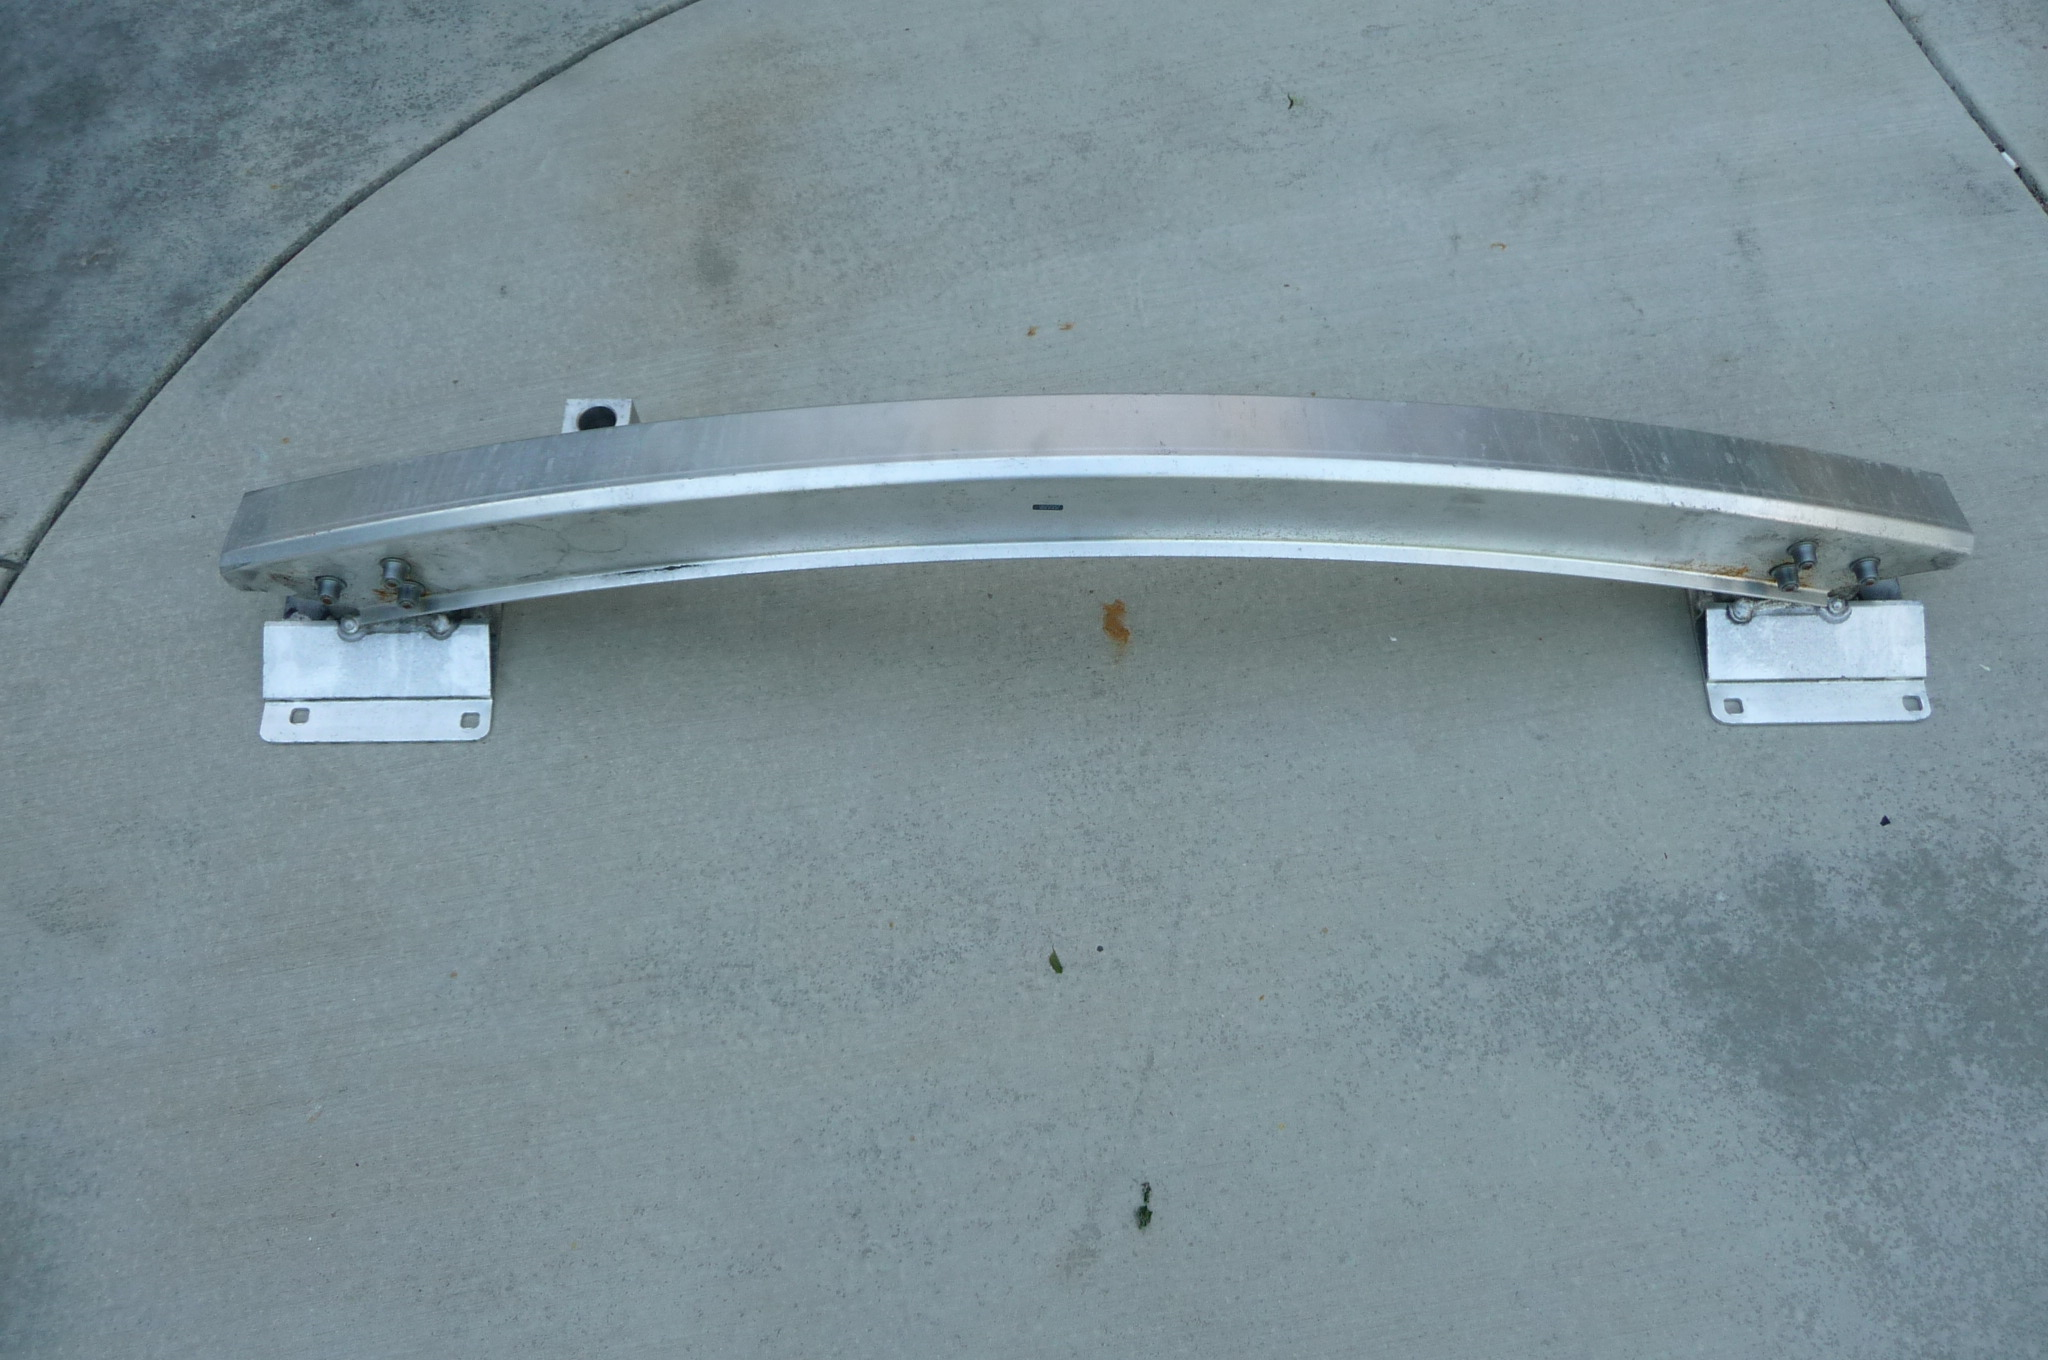 Bentley Continental GT GTC Rear Bumper Reinforcement Beam 3W3807305 OEM OE - Used Auto Parts Store | LA Global Parts